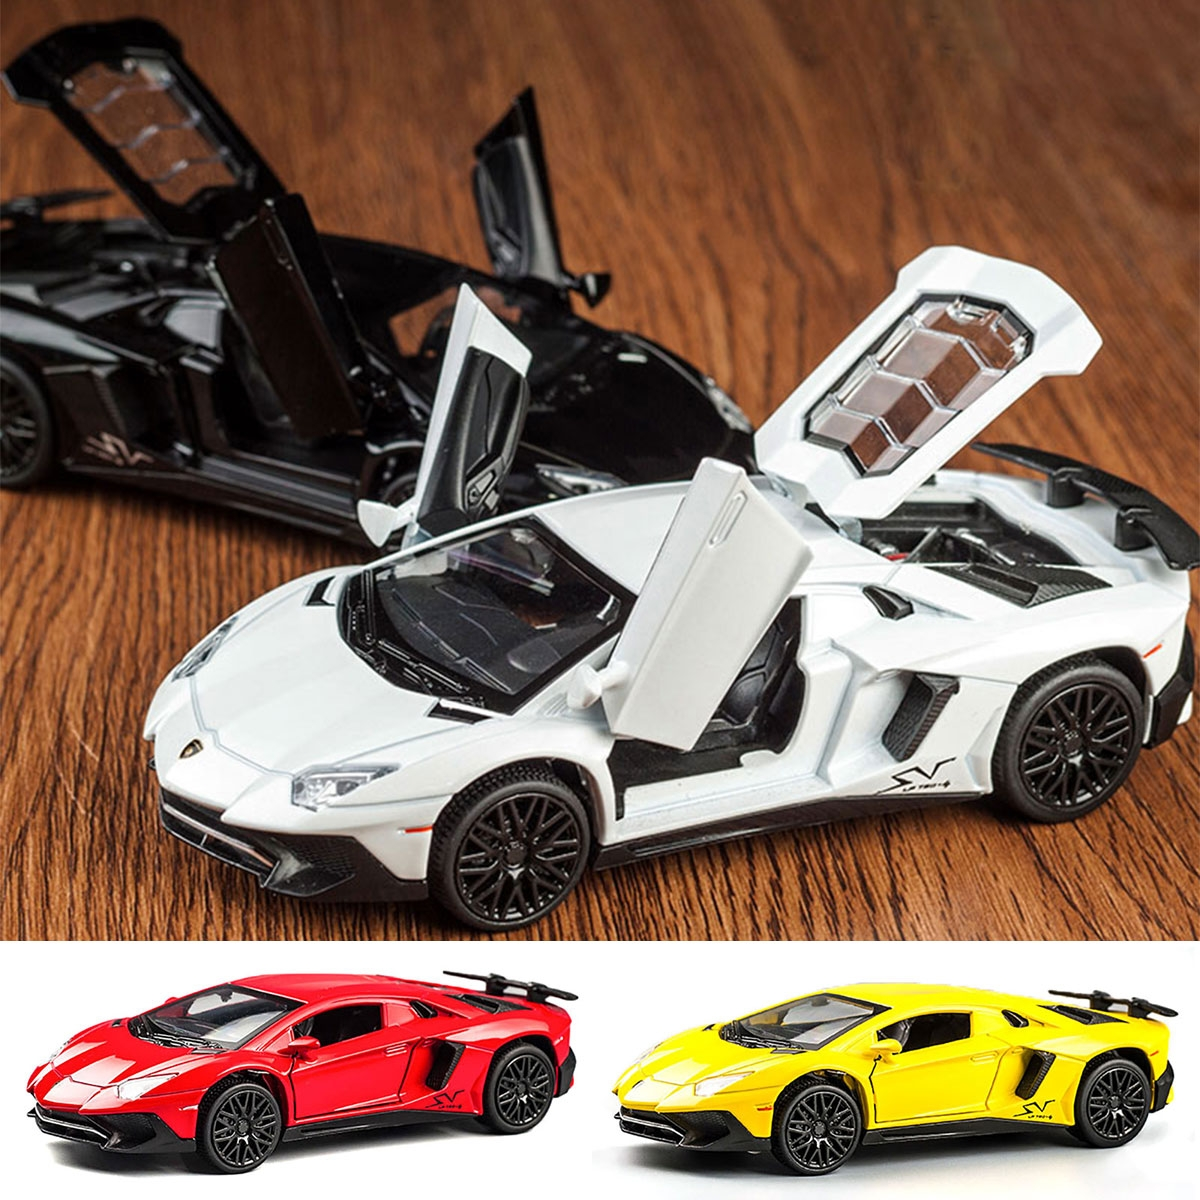 Alloy Metal Lamborghimi Aventador SV LP750-4 Car Diecast Model Car Toy for Children Gift